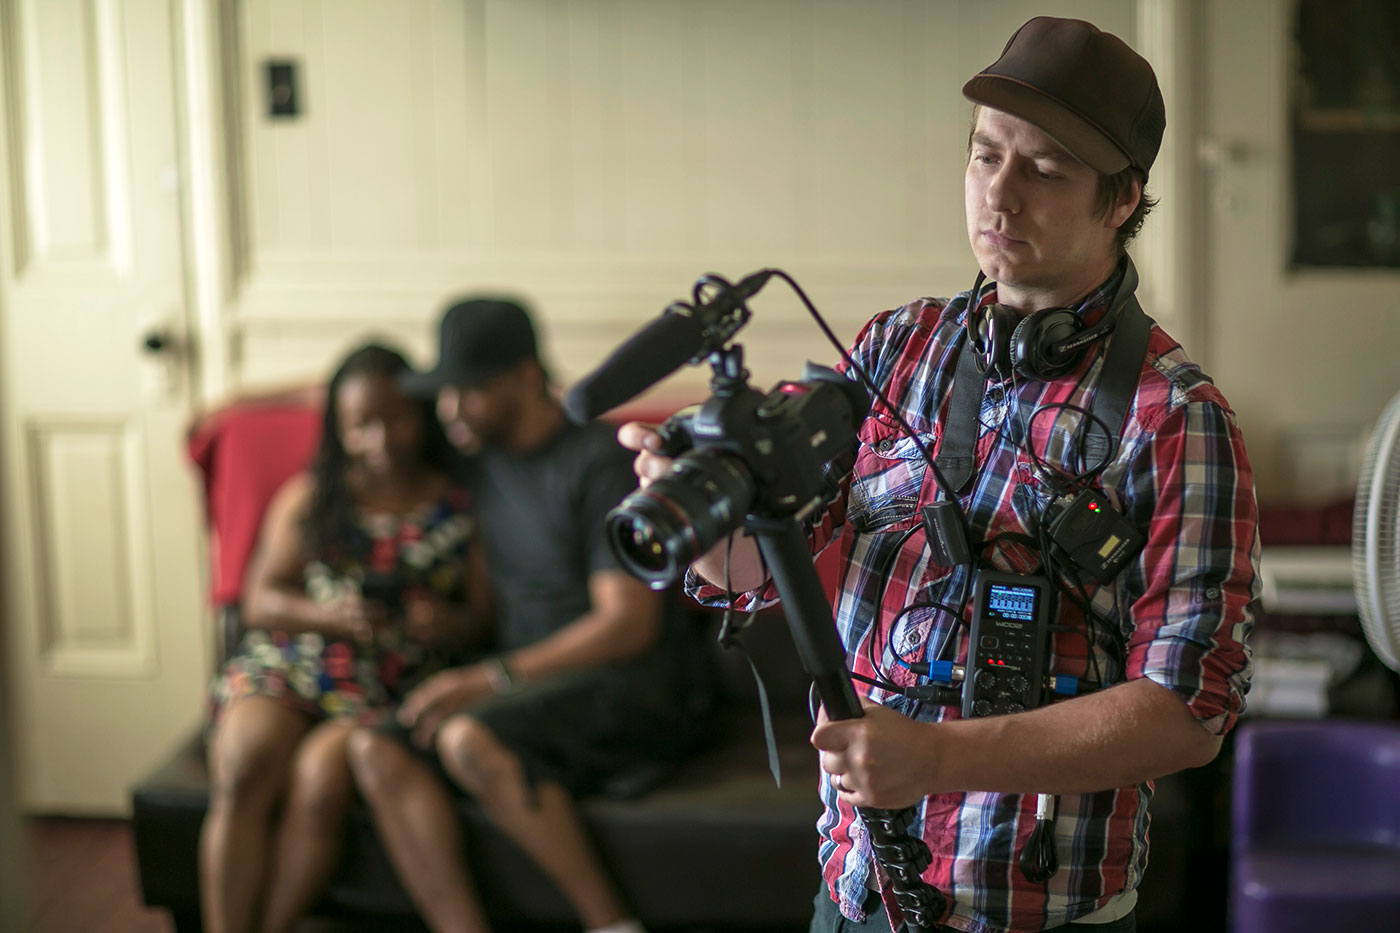 filmmaker Jon Olshefski working on QUEST